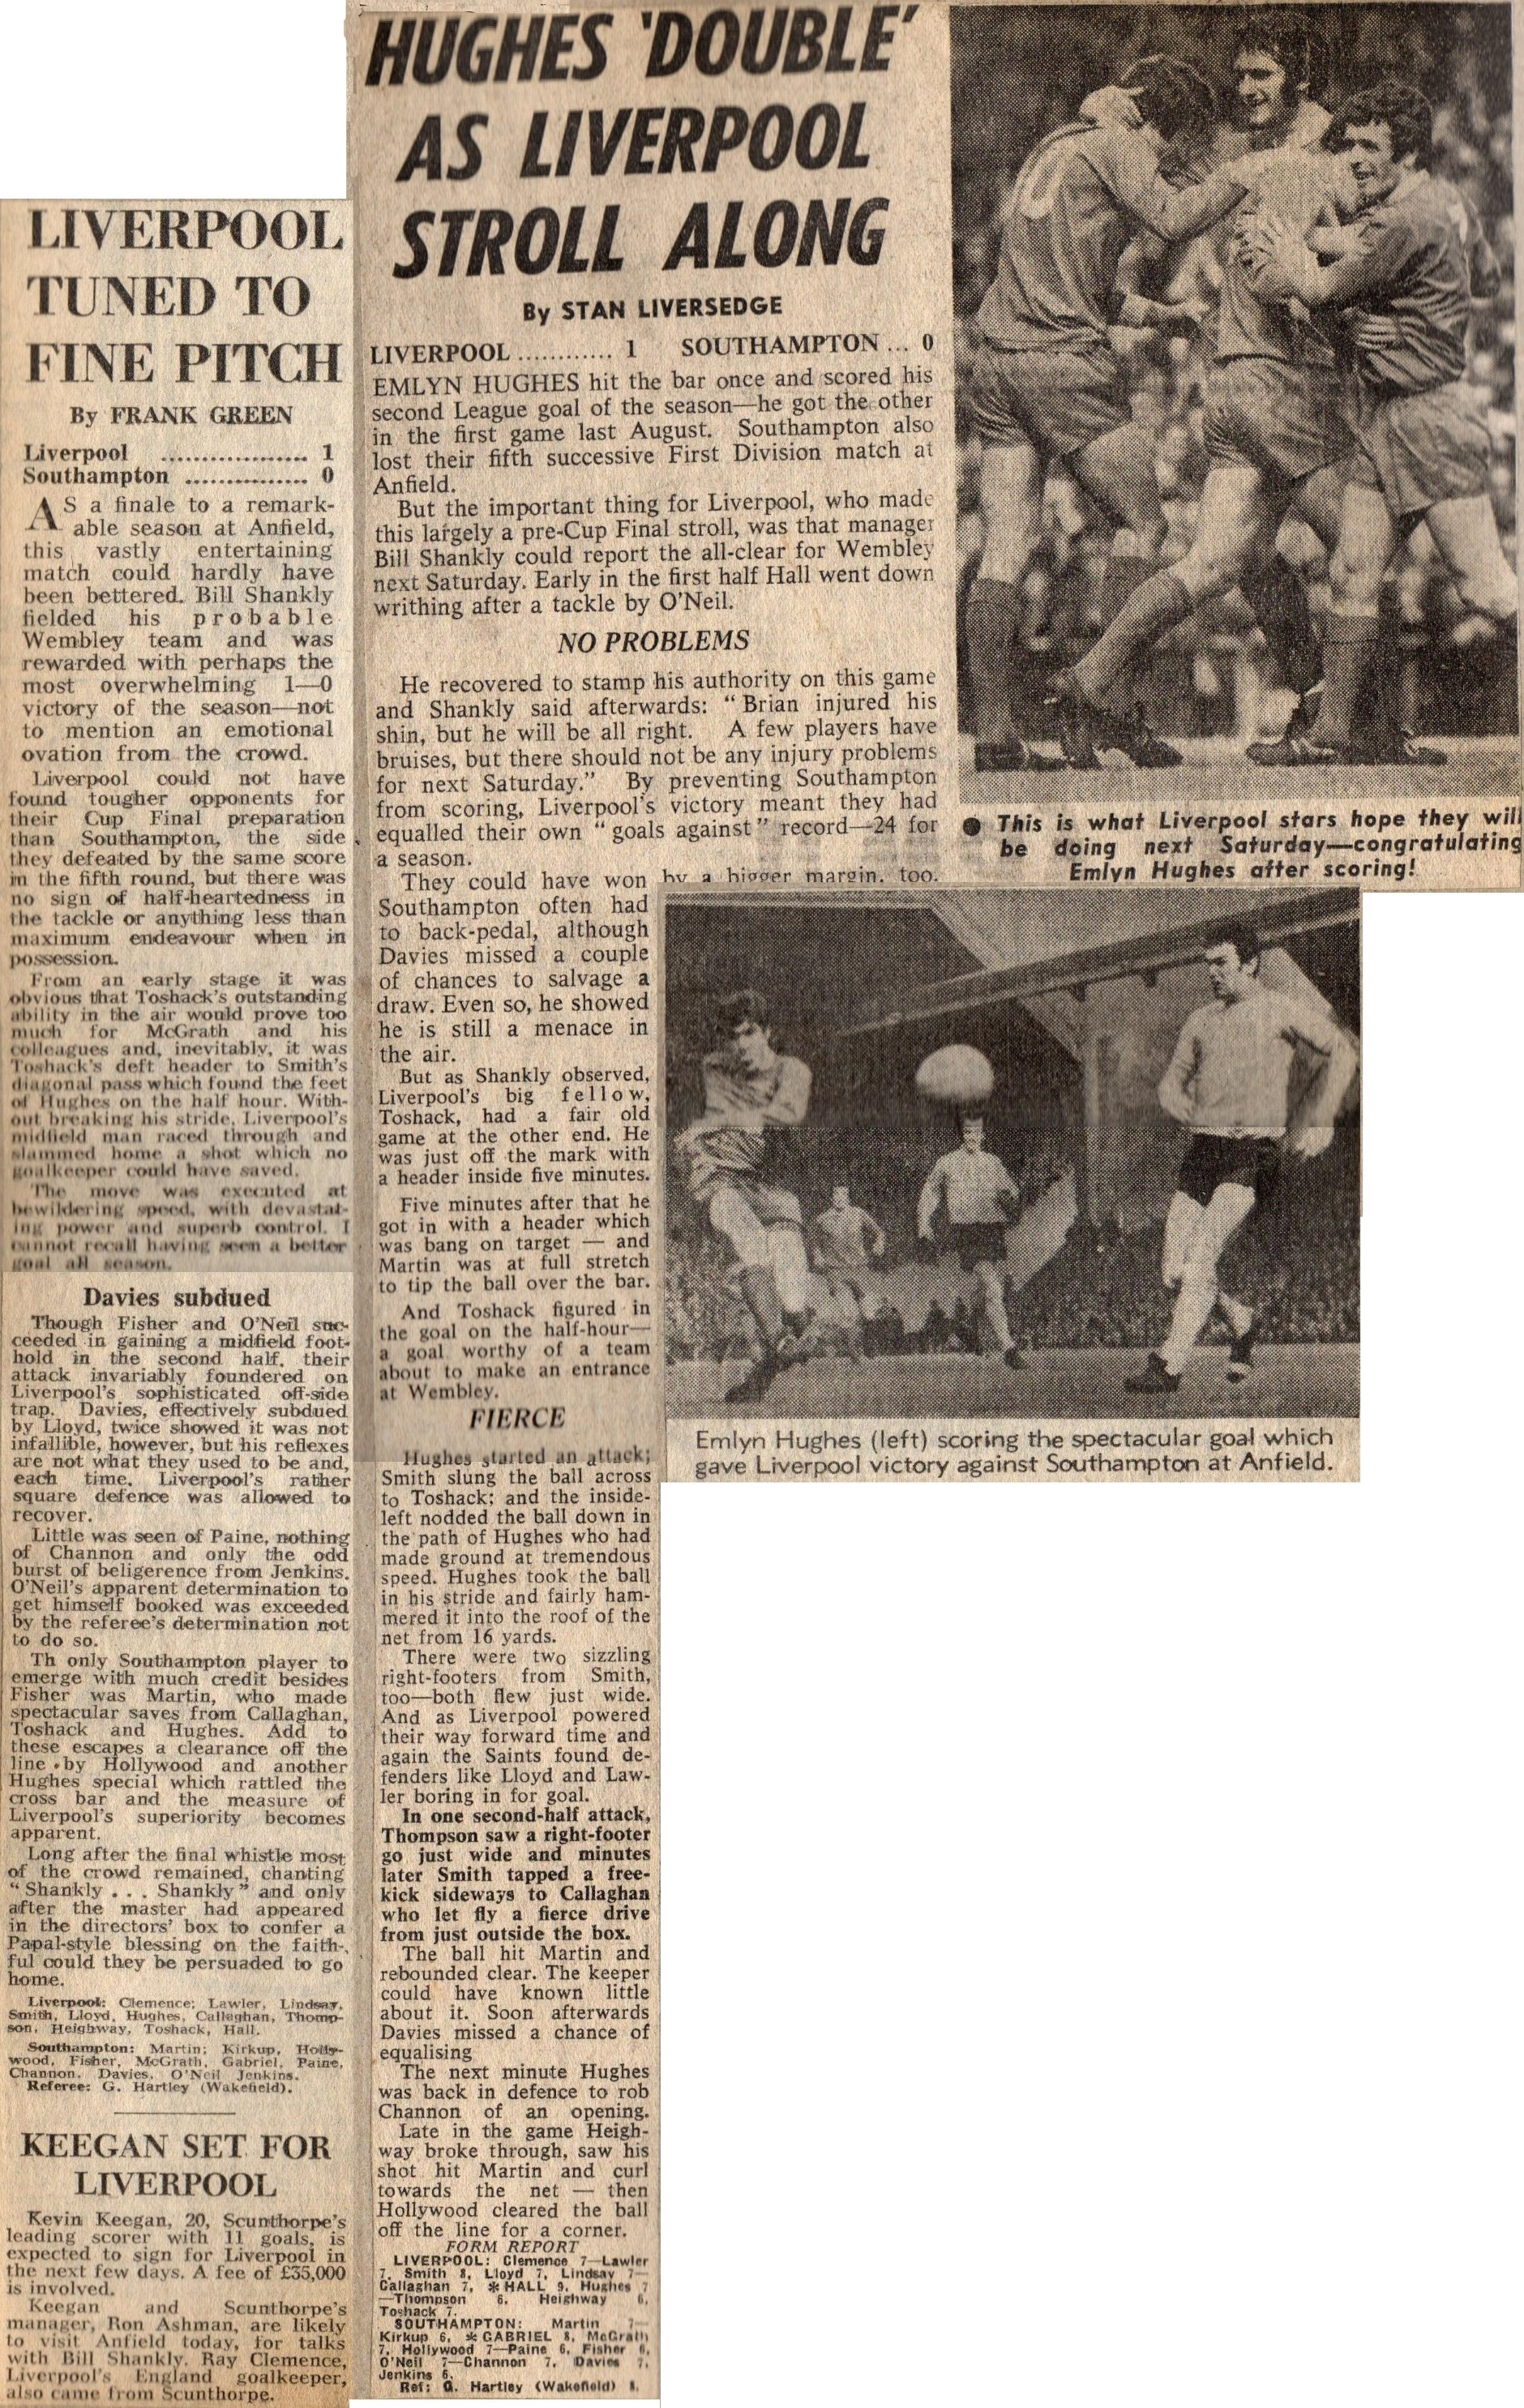 Hughes double versus Southampton on 1 May 1971